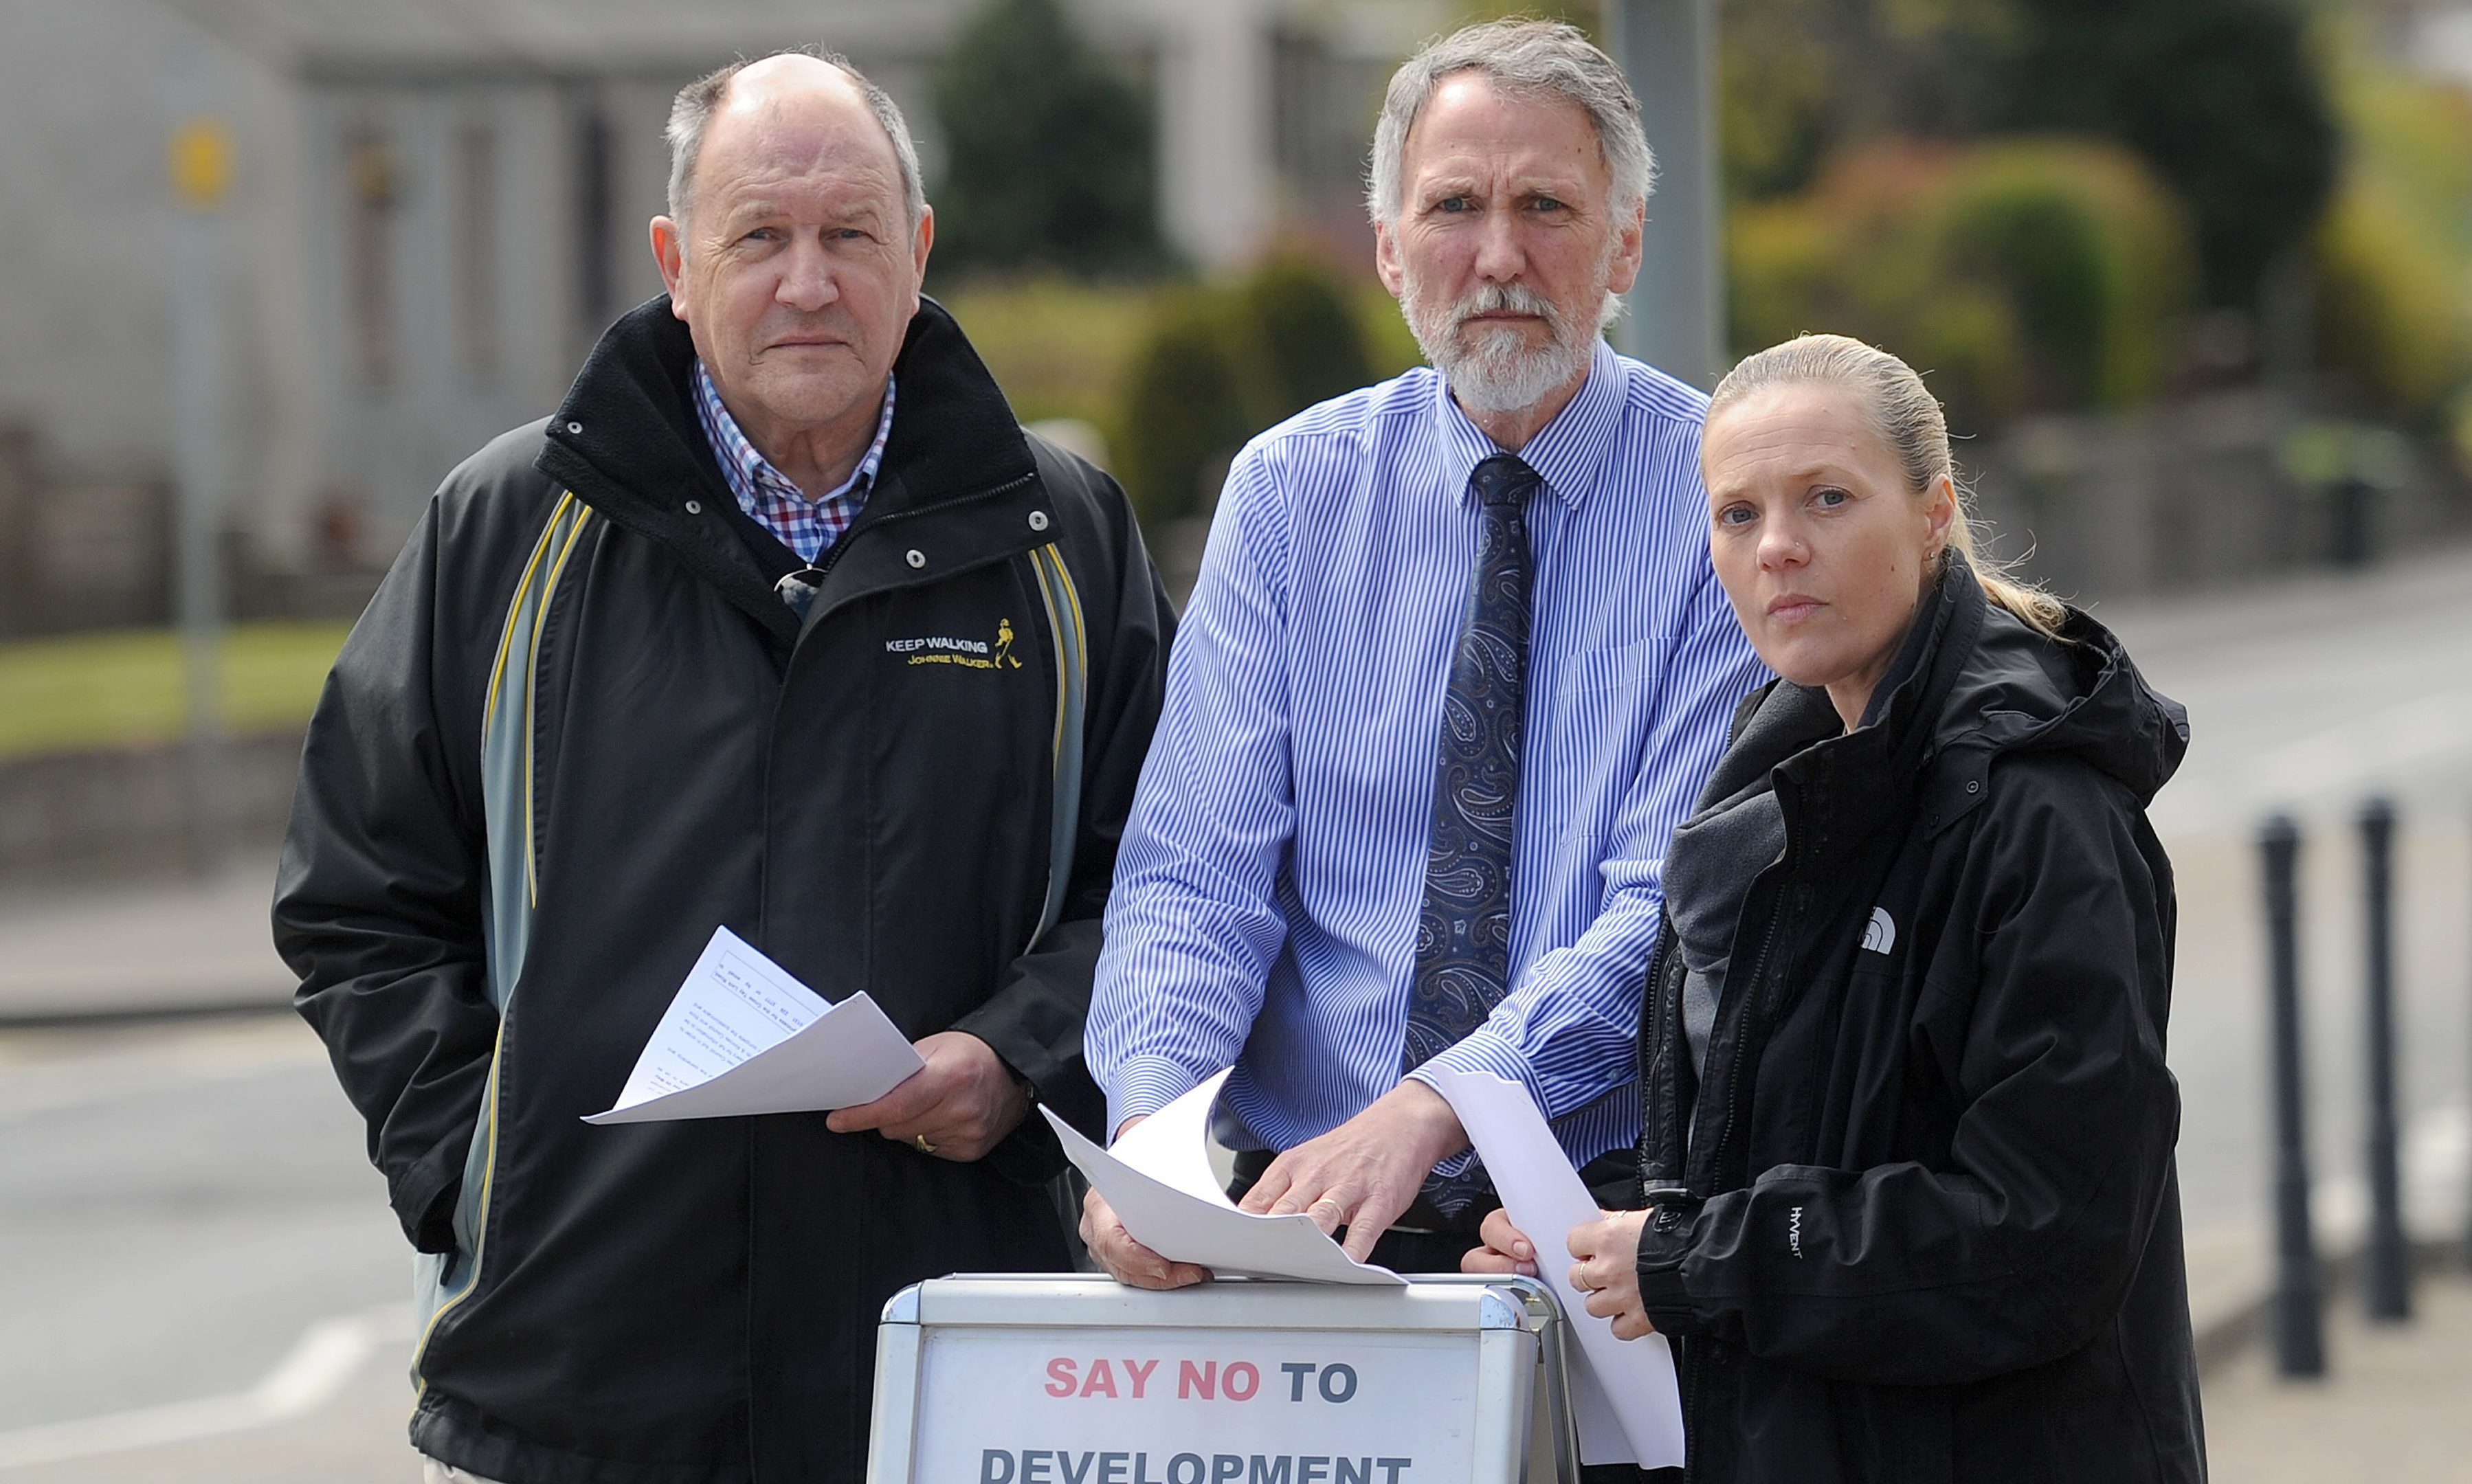 Members of Scone community council are unhappy that PKC is conducting a questionnaire about the proposed Cross Tay Link Road. Picture shows l to r - Martin Rhodes (Scone Community Council), Councillor Lewis Simpson and Lisa Cardno, Perth Road, Scone.